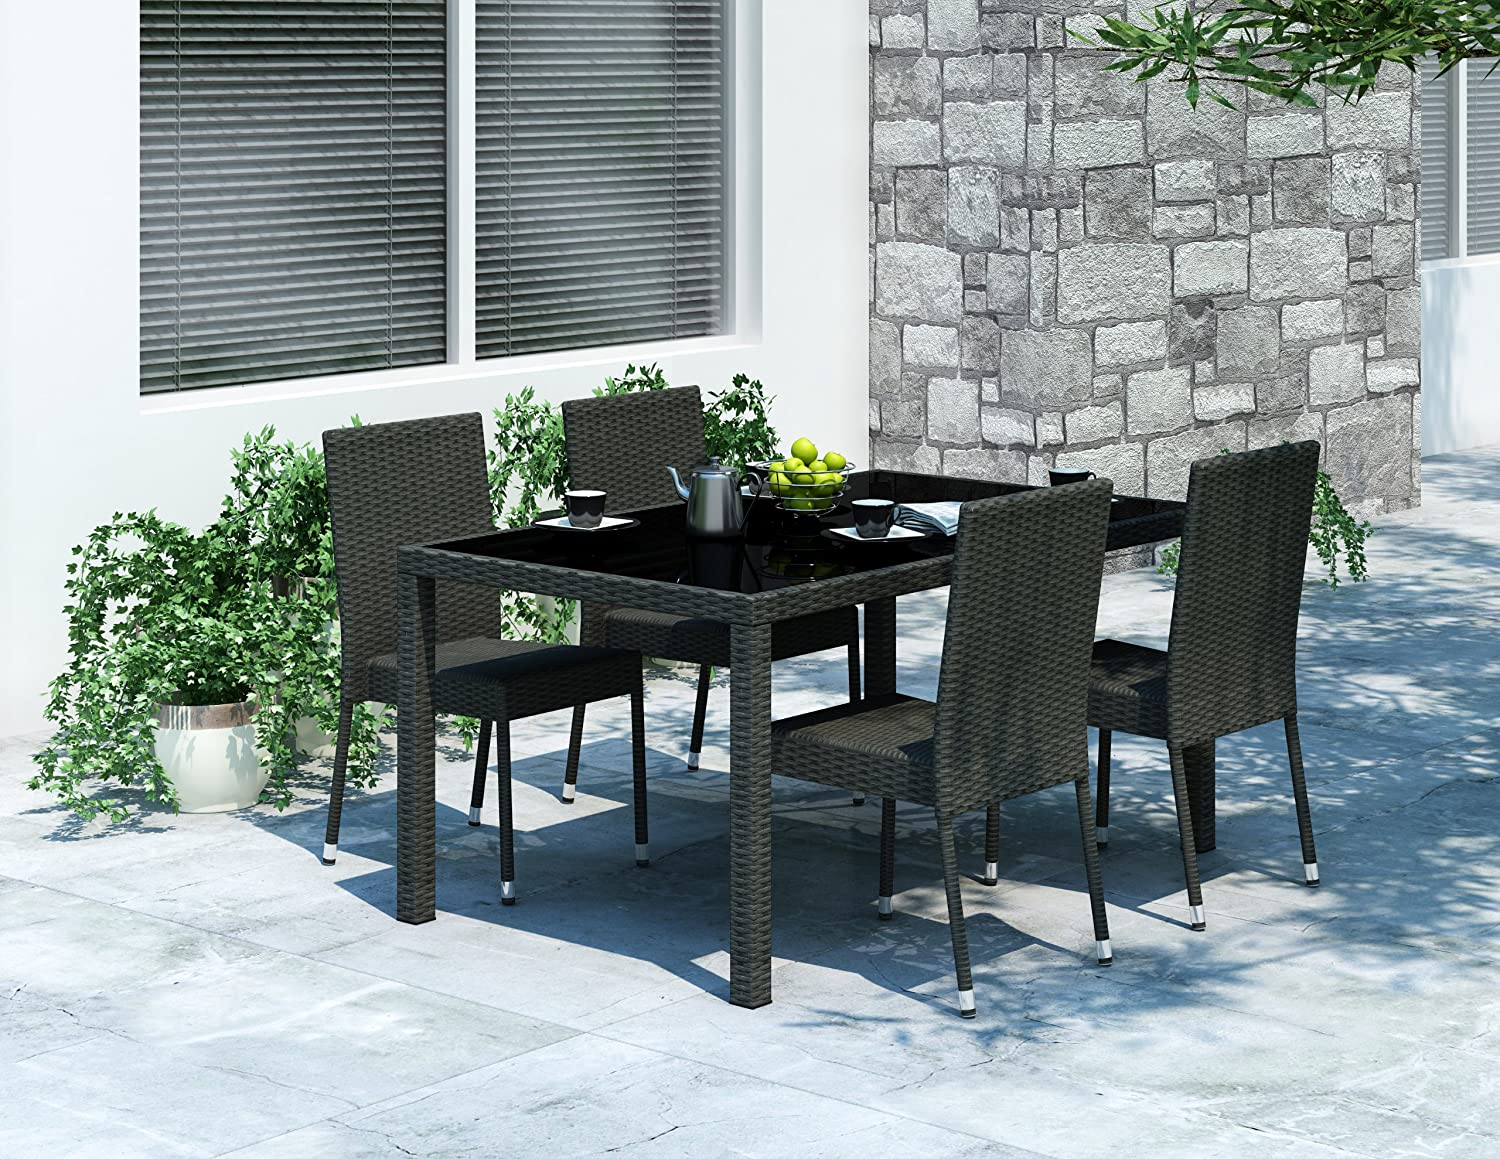 CorLiving PPT-602-T Sonax Park Terrace Patio Dining Table in Charcoal Black Weave